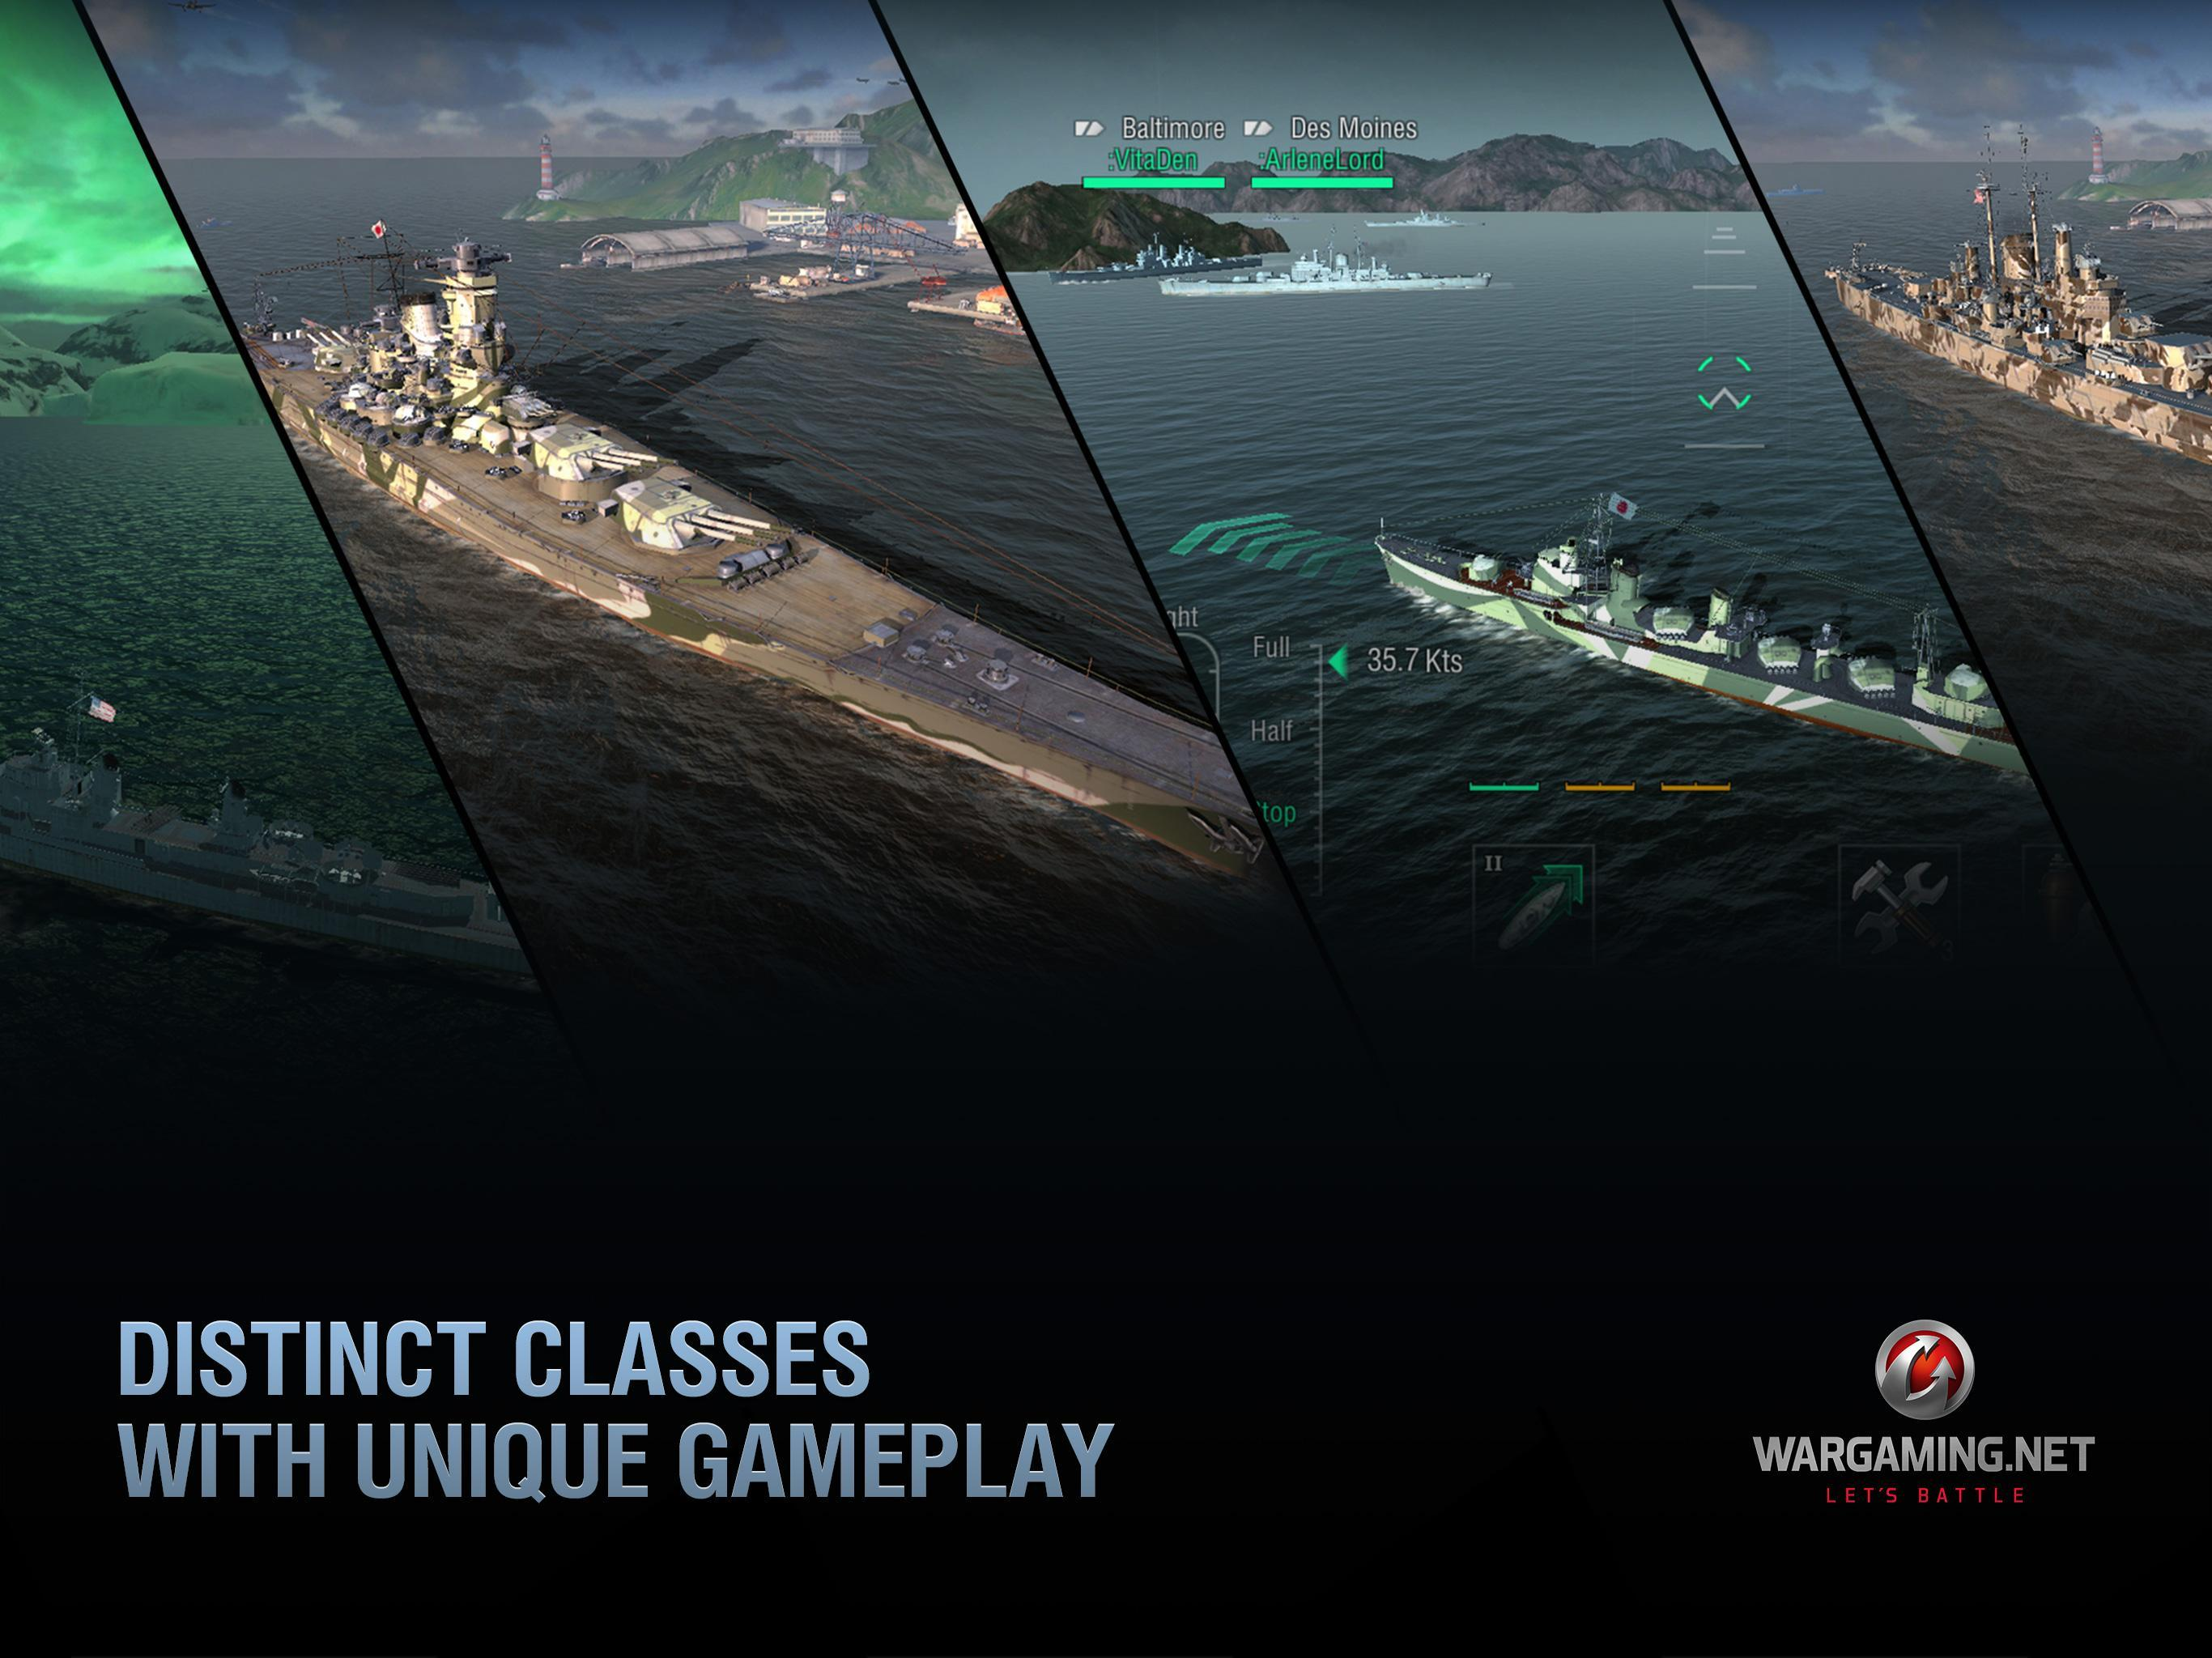 World of Warships Blitz: Gunship Action War Game for Android